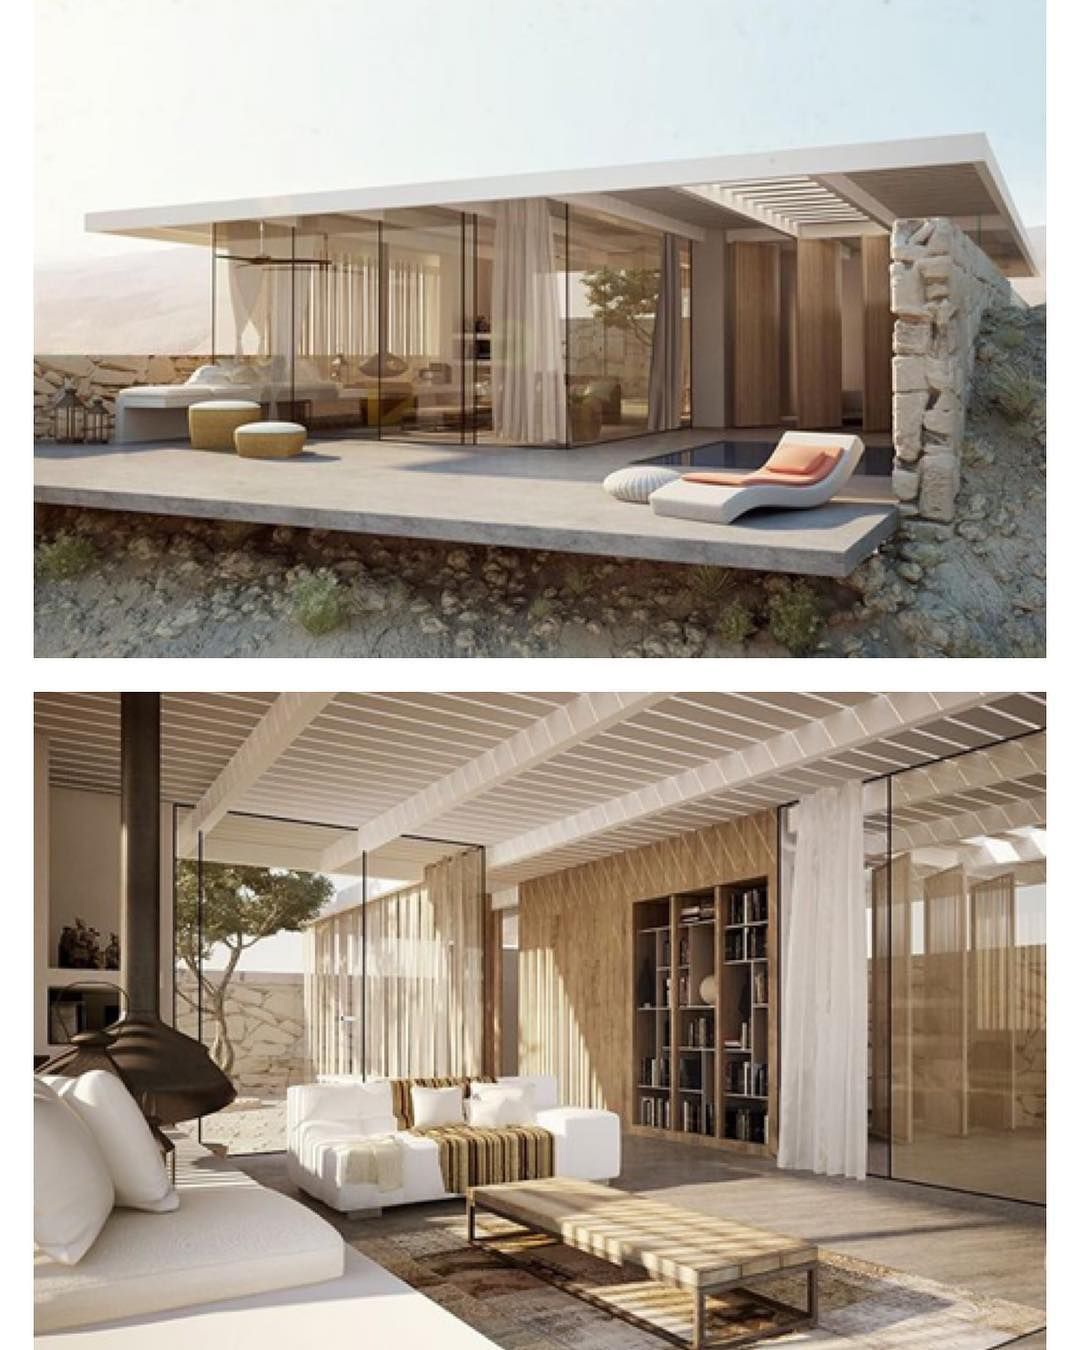 Modern Desert Villa Retreat Concept Design By Weinstein